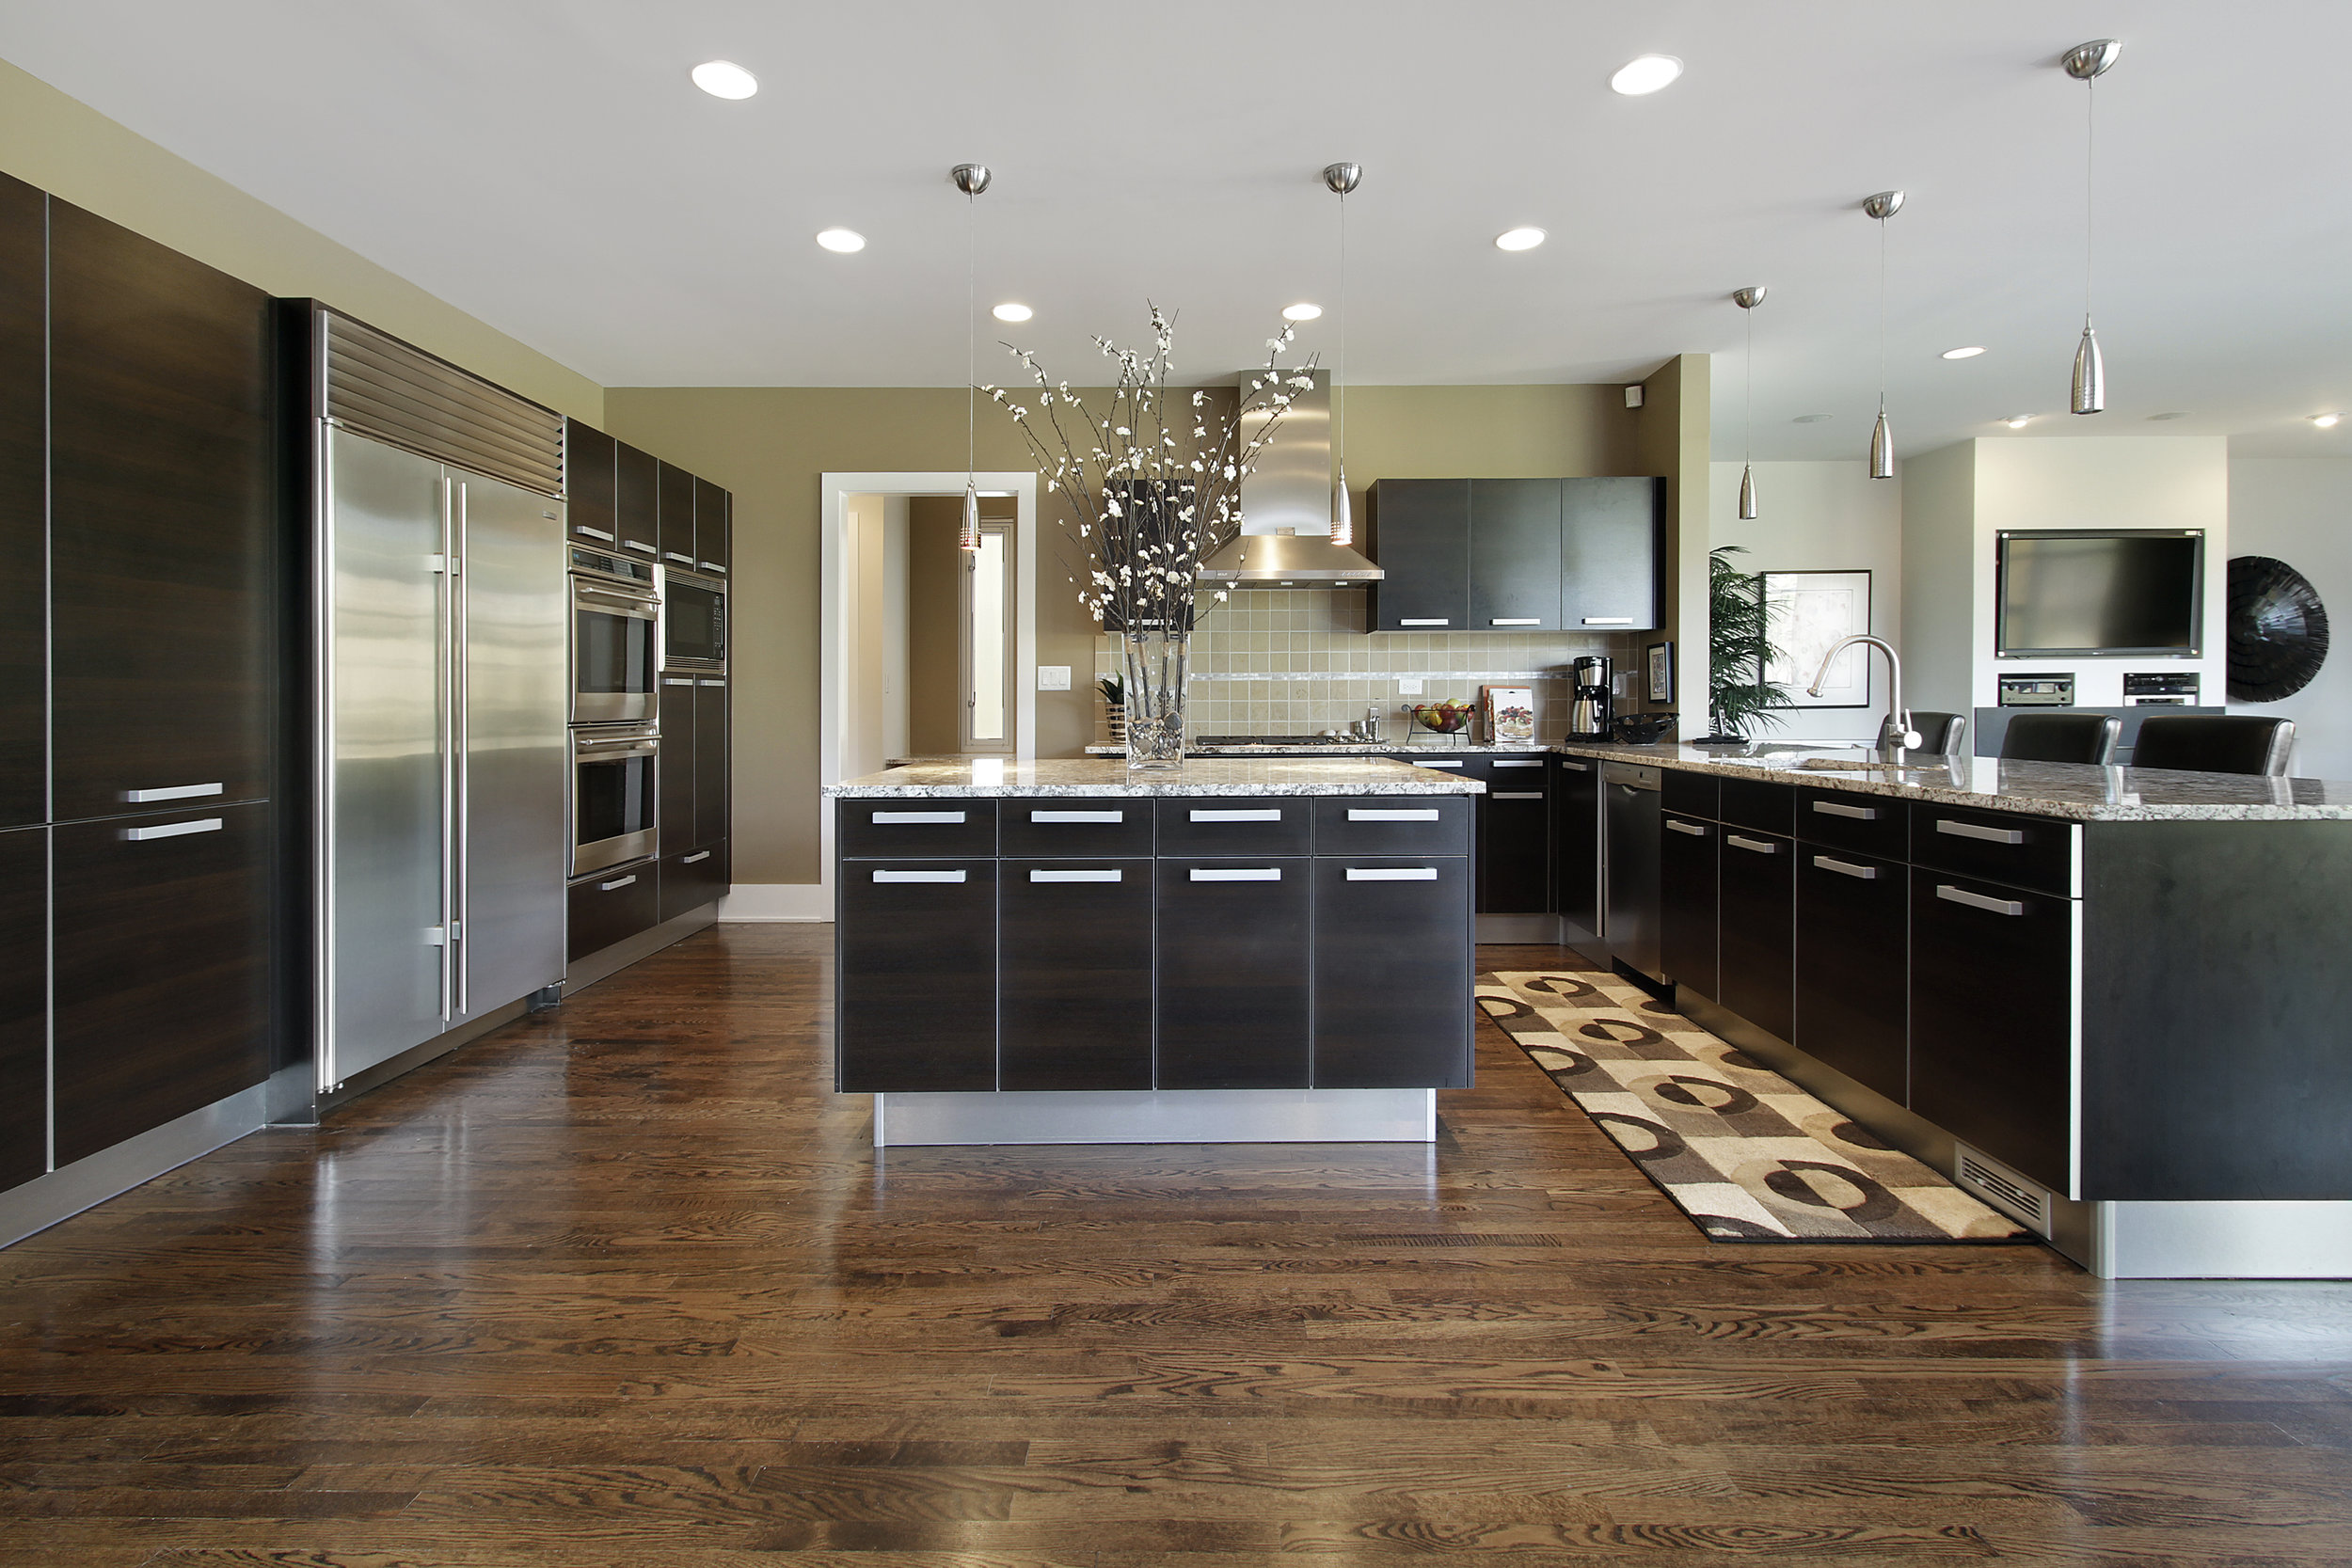 KITCHEN REMODELING - CLICK HERE